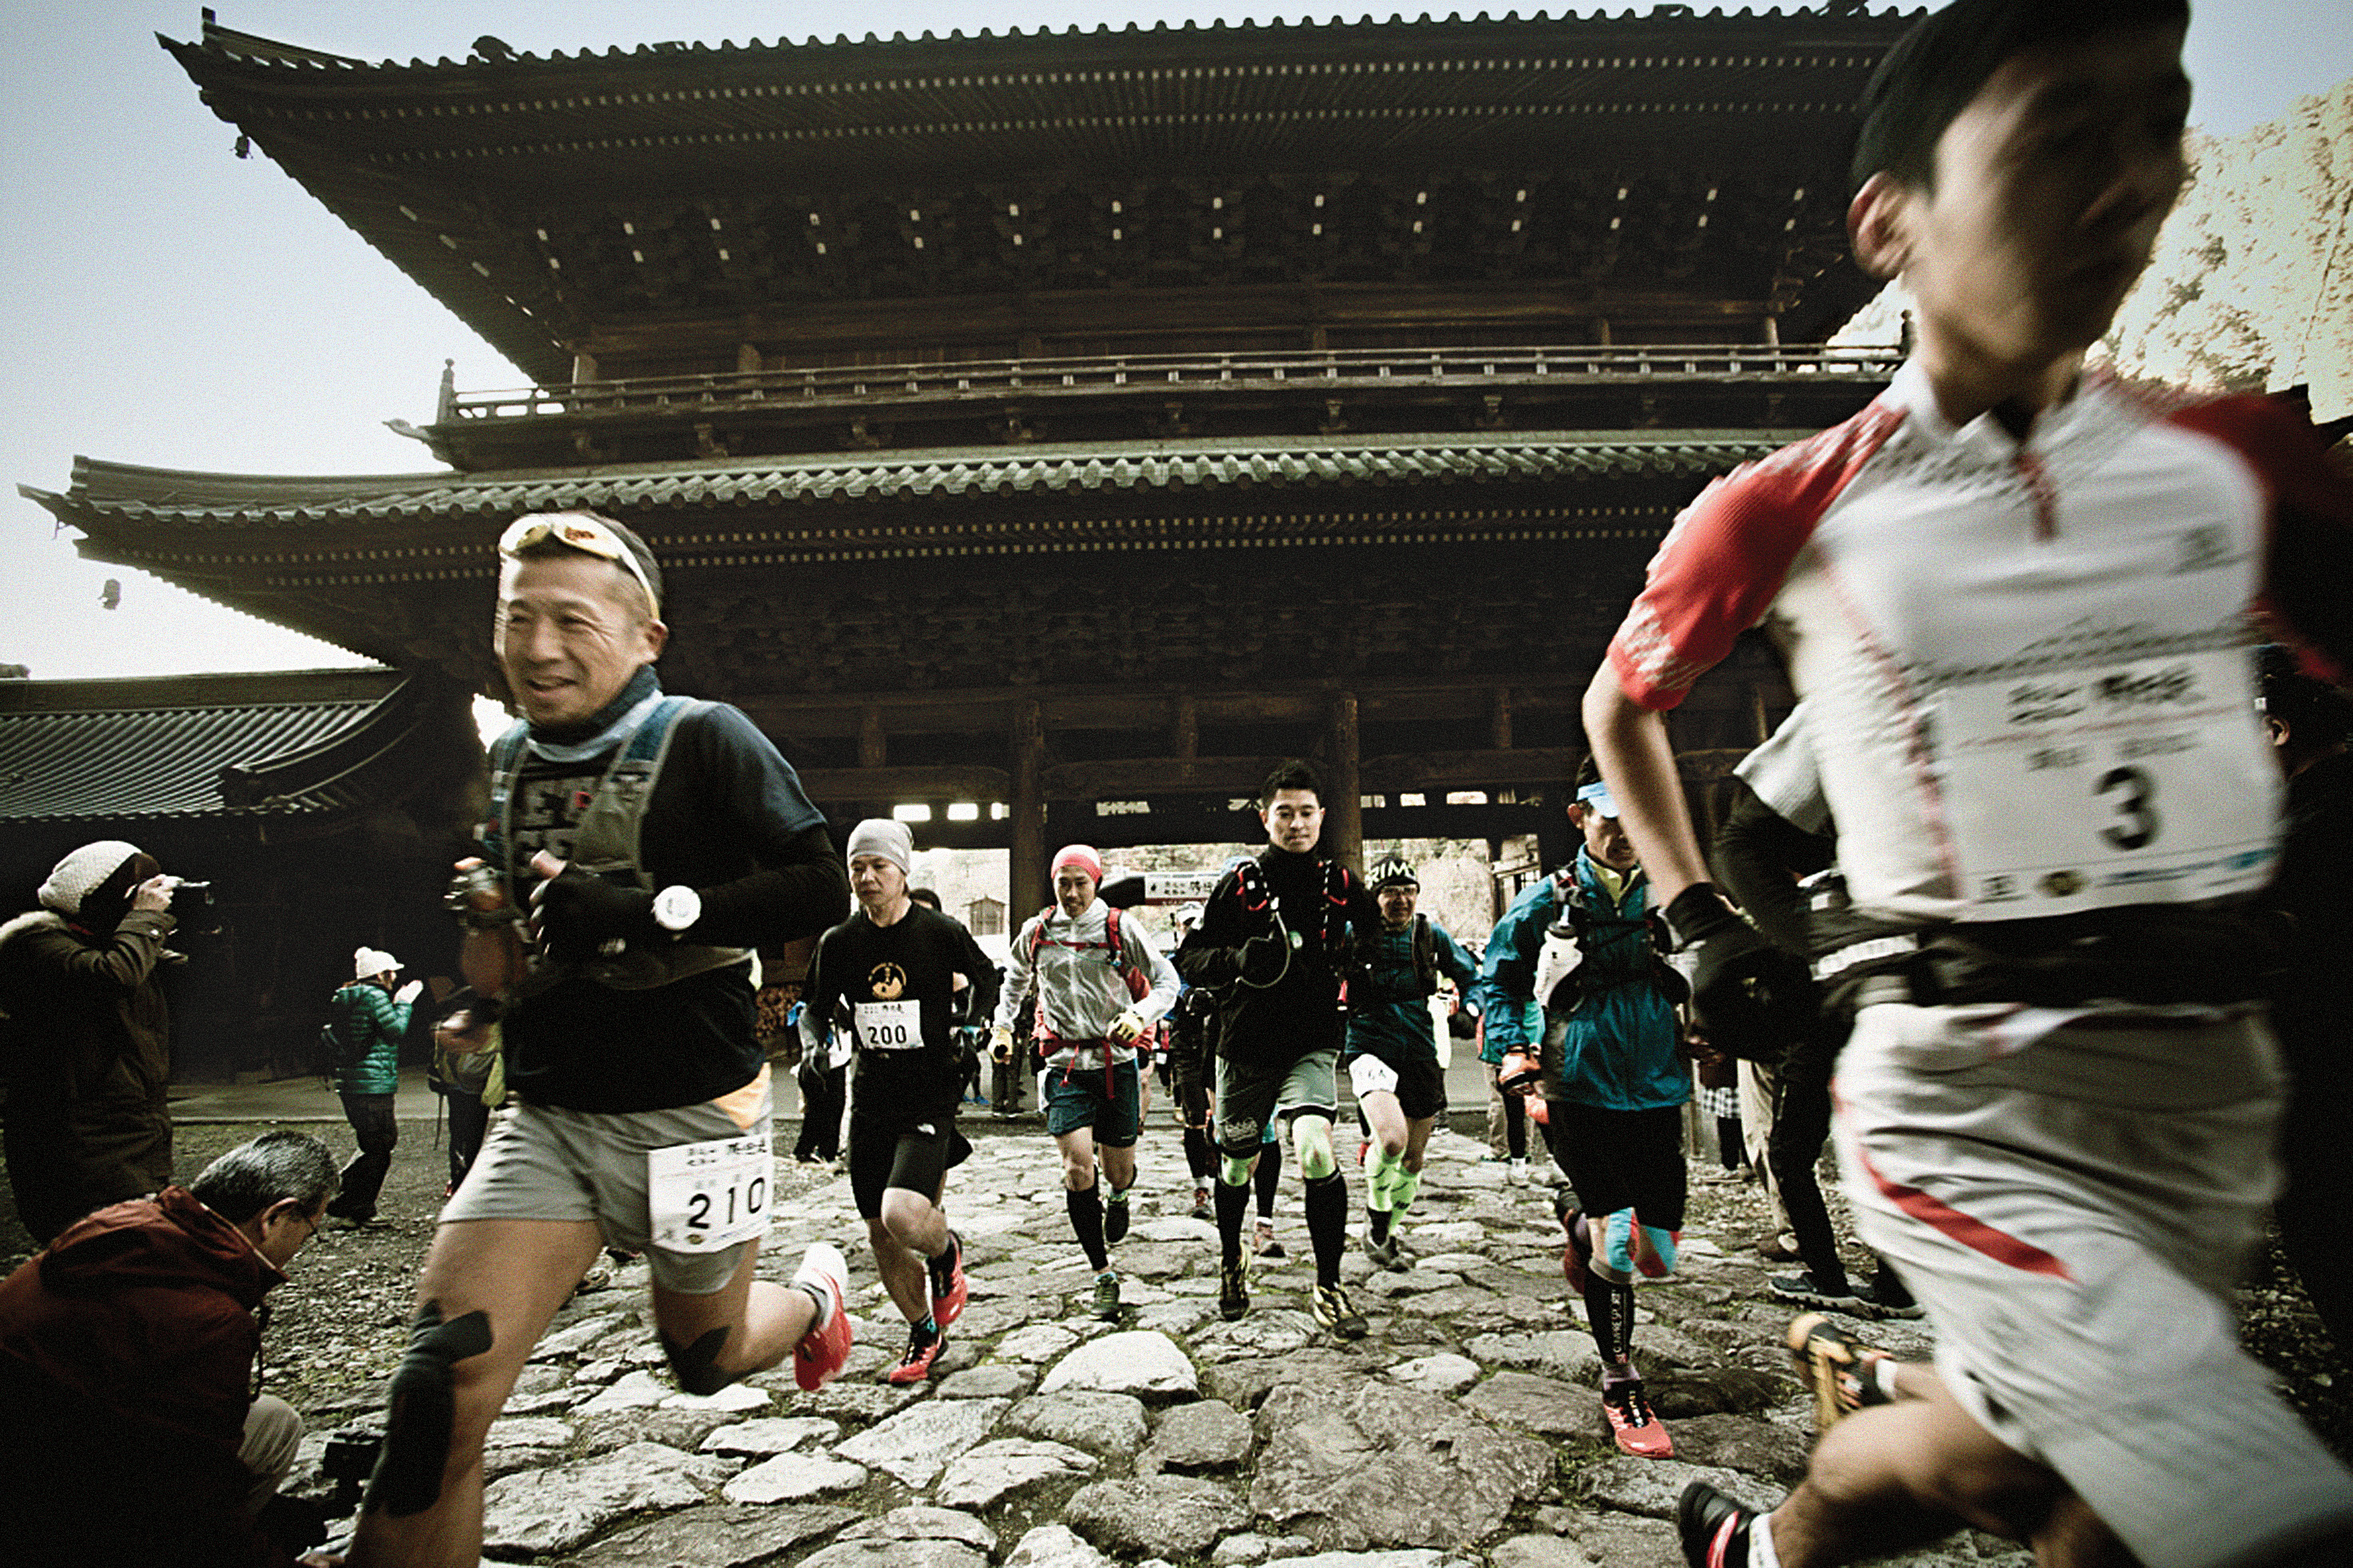 193 runners joined in the first Buddhist Priest Temple Race, a 36-kilometer run, starting from the Sanmon Gate of Minobusan Kuonji Temple.